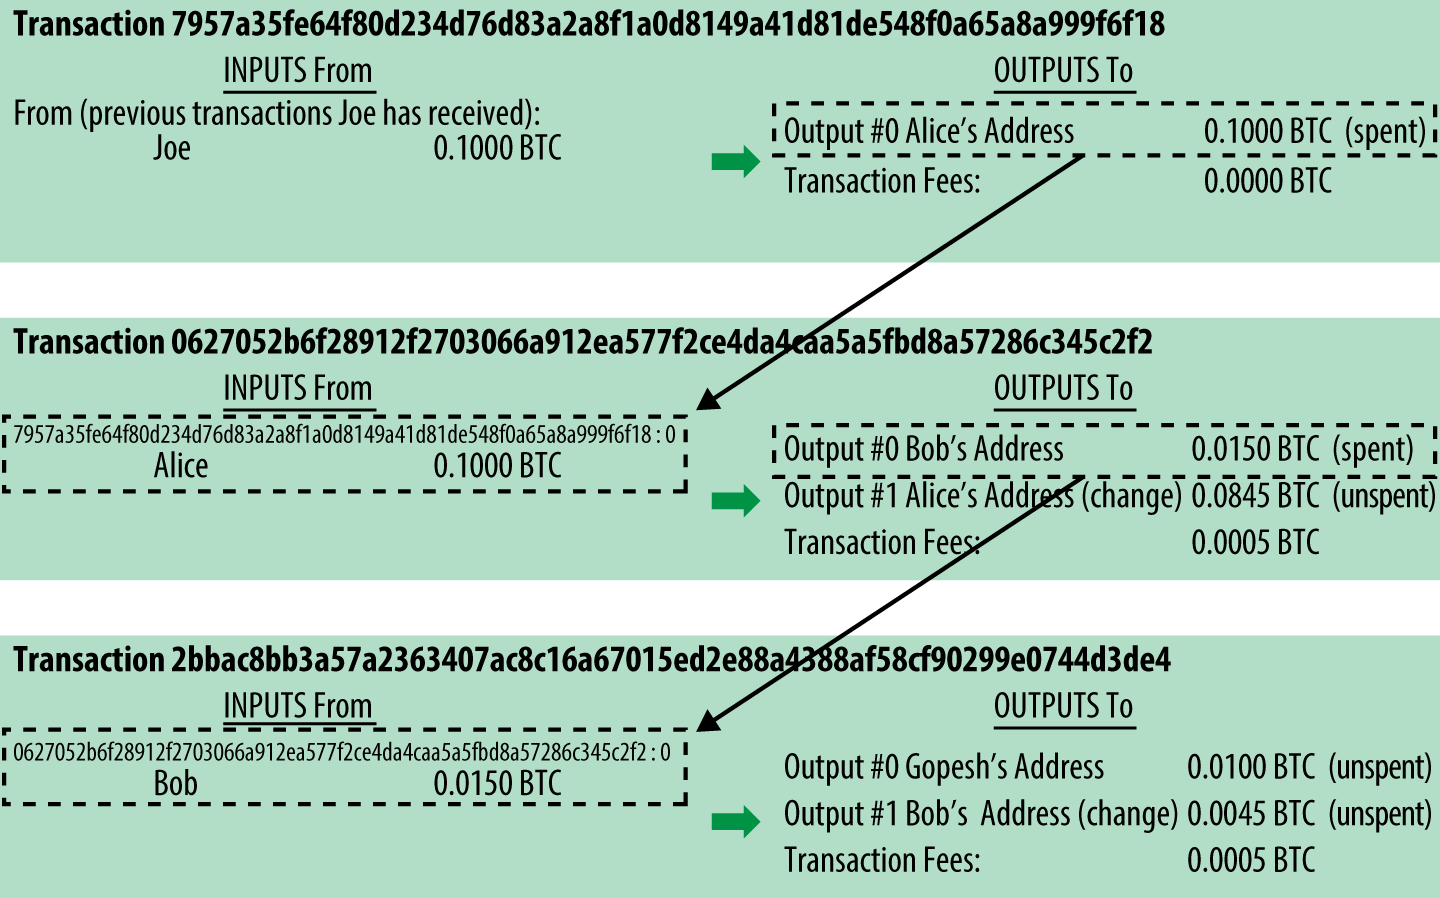 A chain of transactions, where the output of one transaction is the input of the next transaction